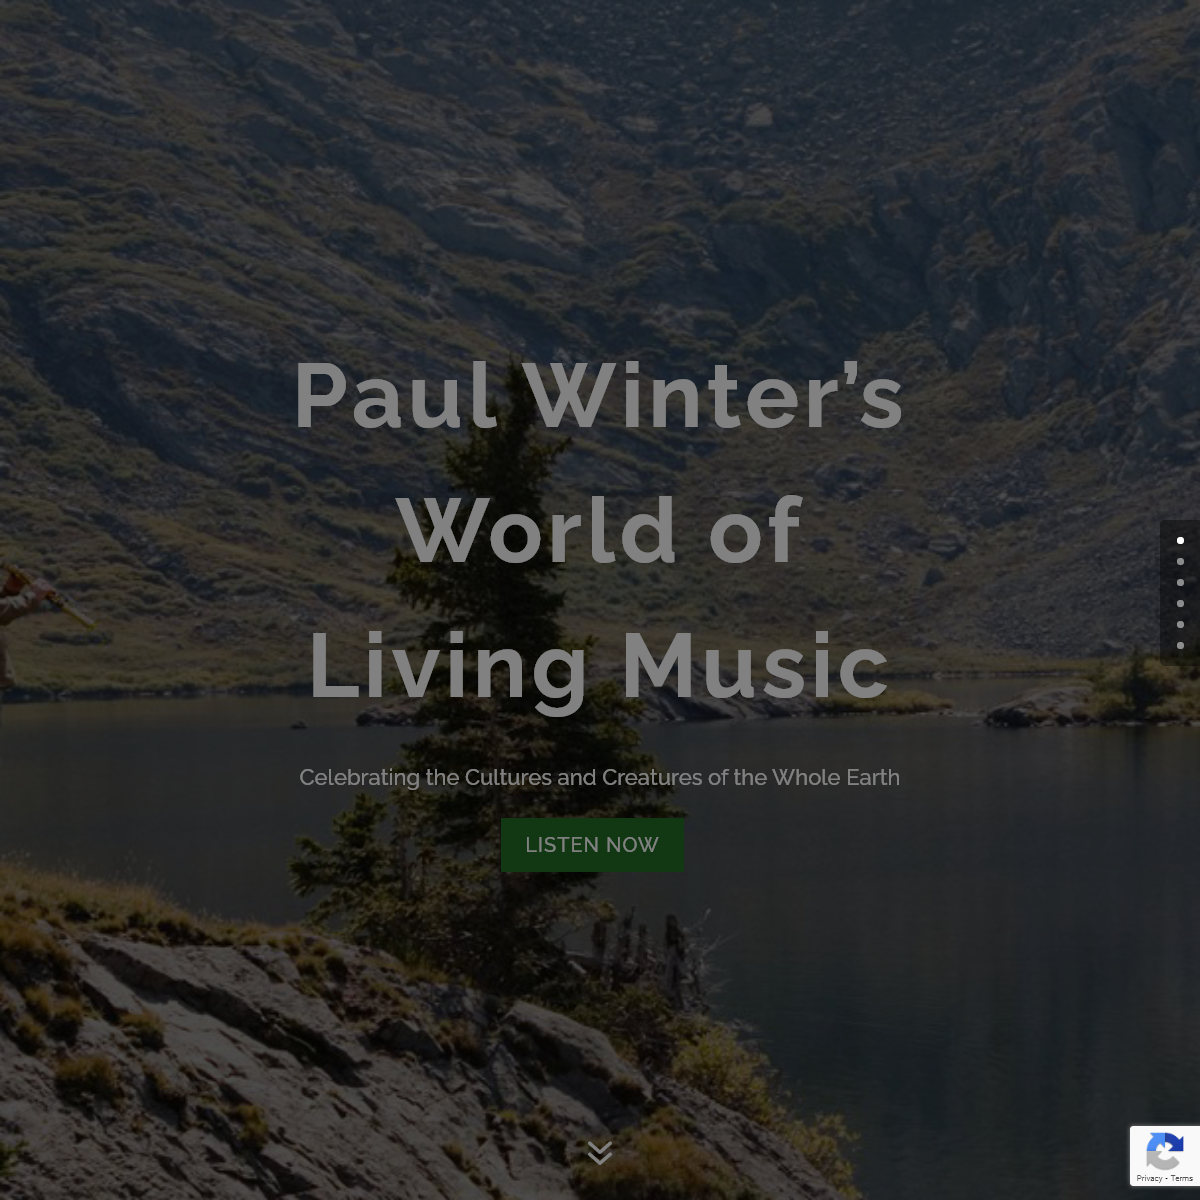 Paul Winter - Musician and Bandleader